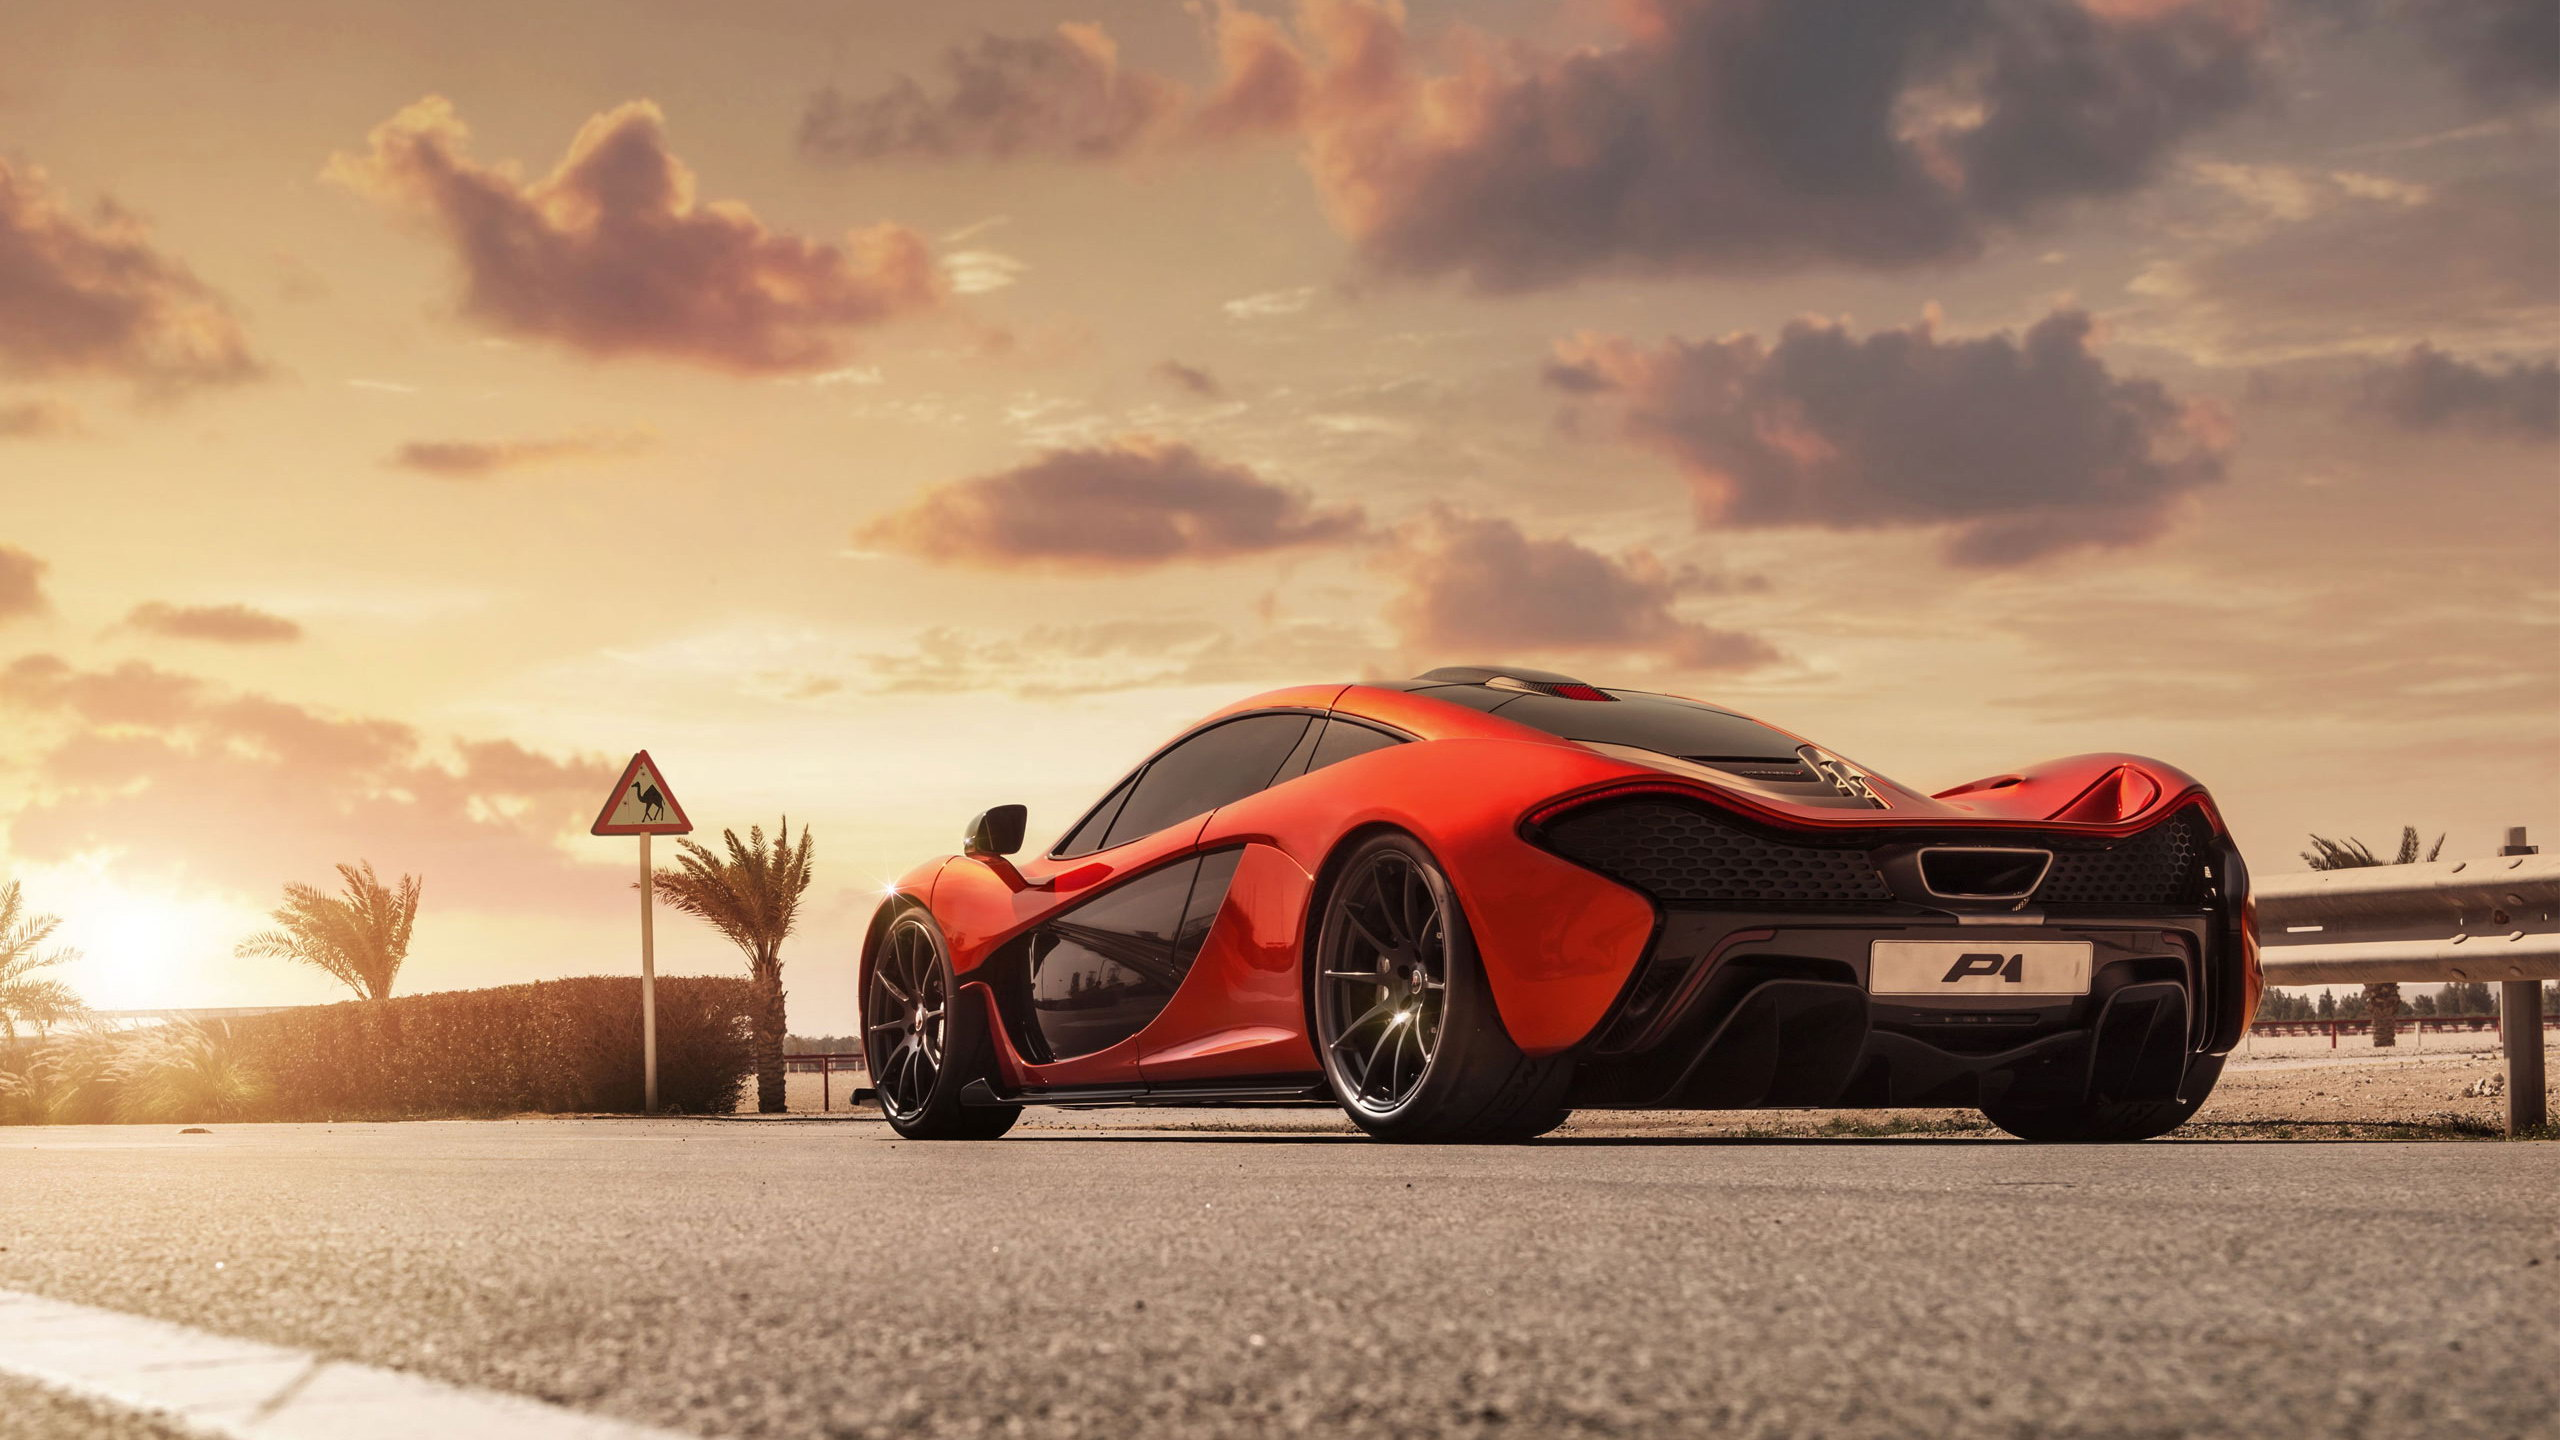 50 super sports car wallpapers that39;ll blow your desktop away - hd